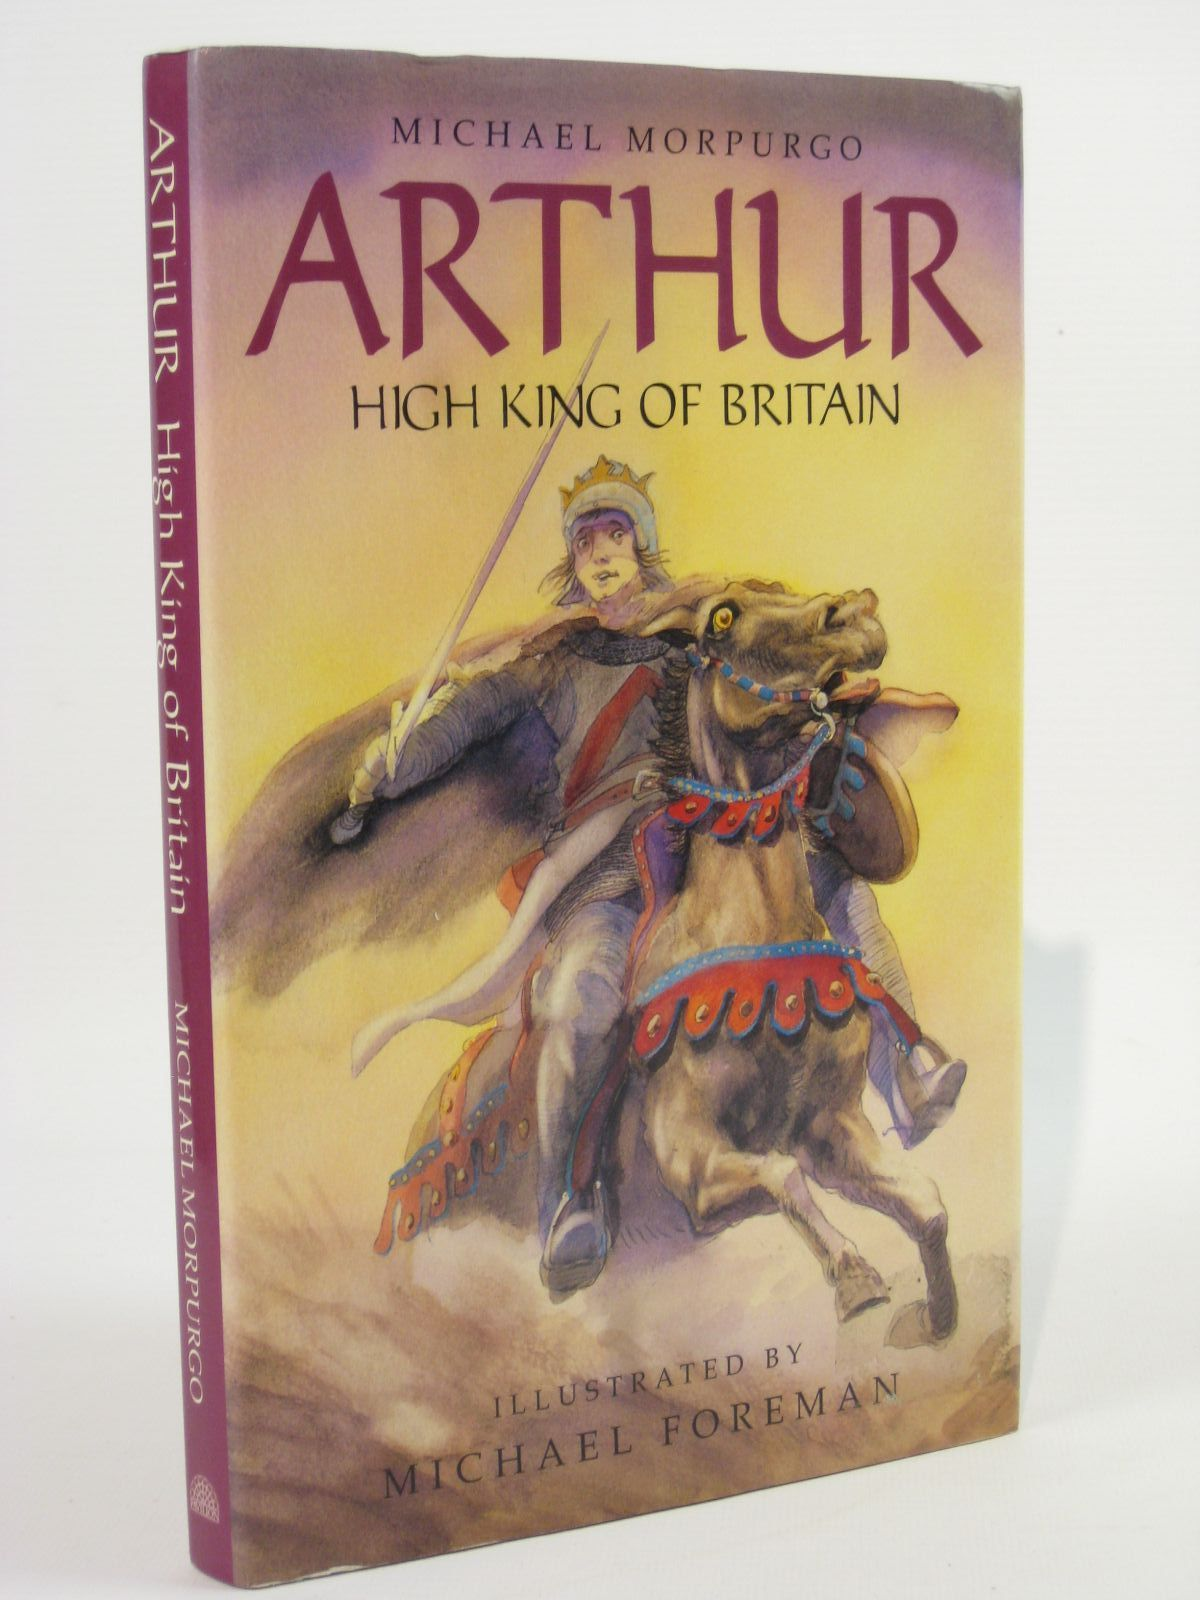 Photo of ARTHUR HIGH KING OF BRITAIN written by Morpurgo, Michael illustrated by Foreman, Michael published by Pavilion Books Ltd. (STOCK CODE: 1407071)  for sale by Stella & Rose's Books